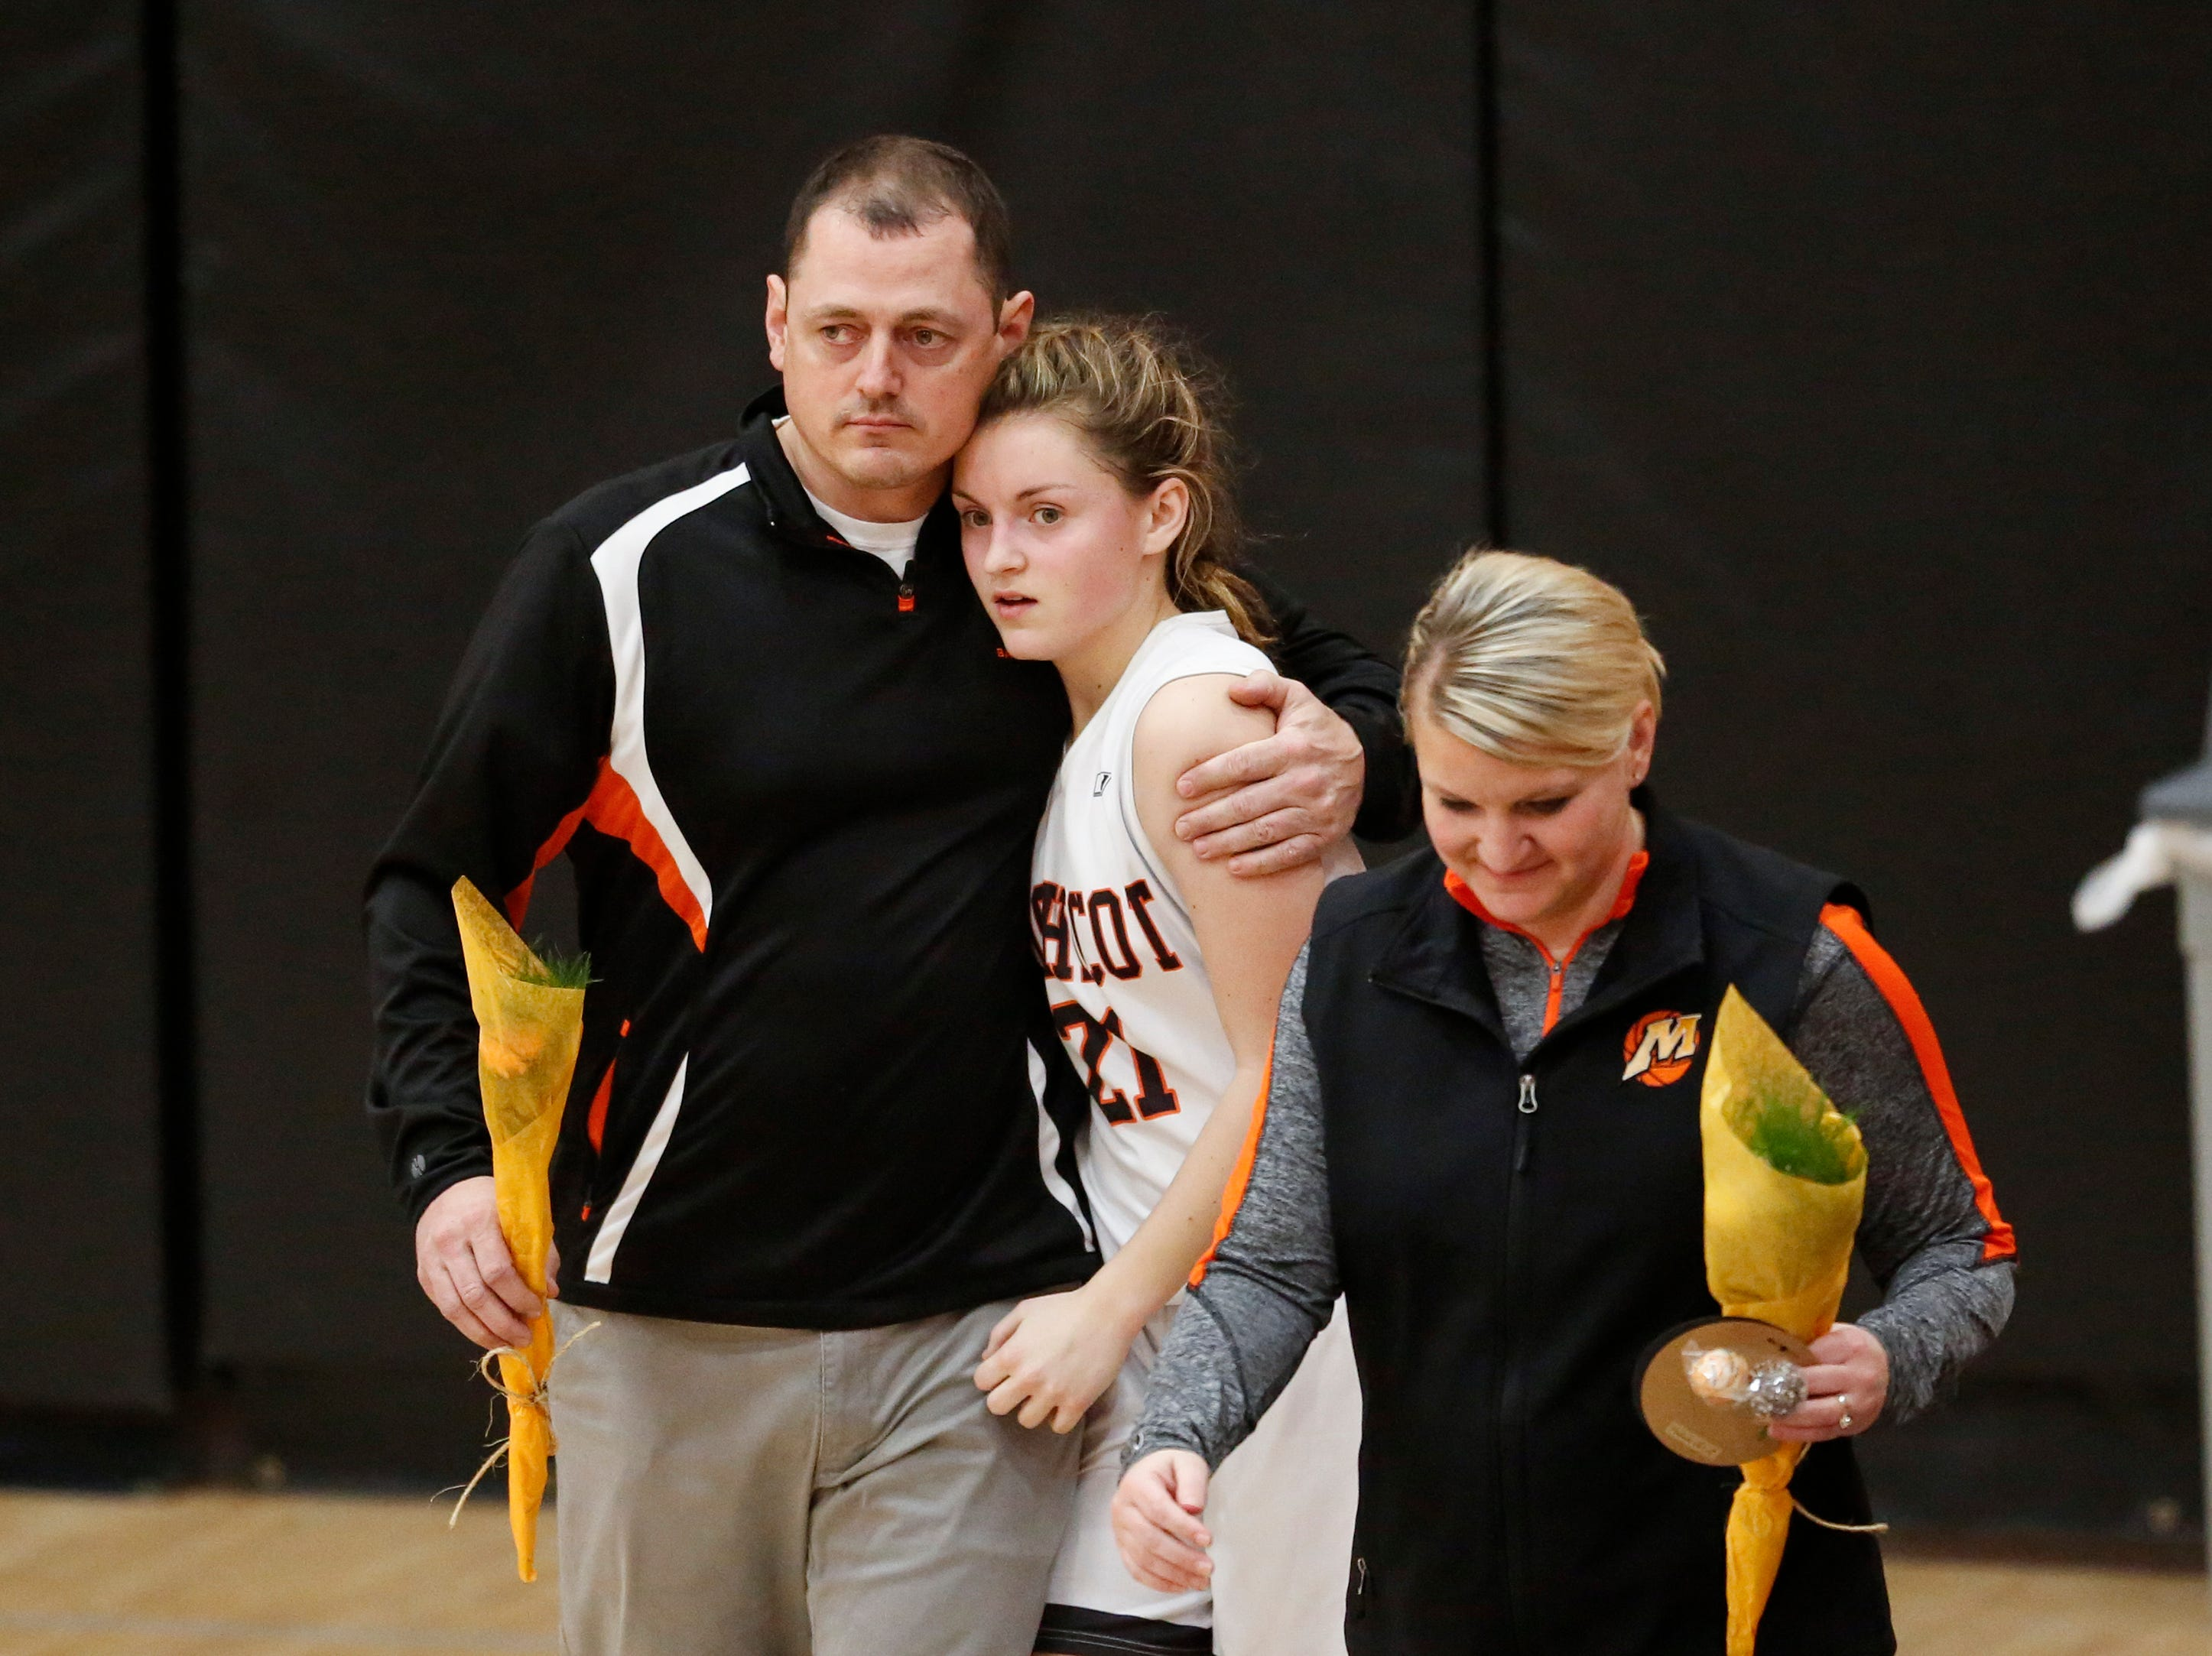 Mishicot's head coach Mike Garceau gives his daughter Abigail Garceau a hug during parents night at Mishicot High School Friday, January 11, 2019, in Mishicot, Wis. Joshua Clark/USA TODAY NETWORK-Wisconsin